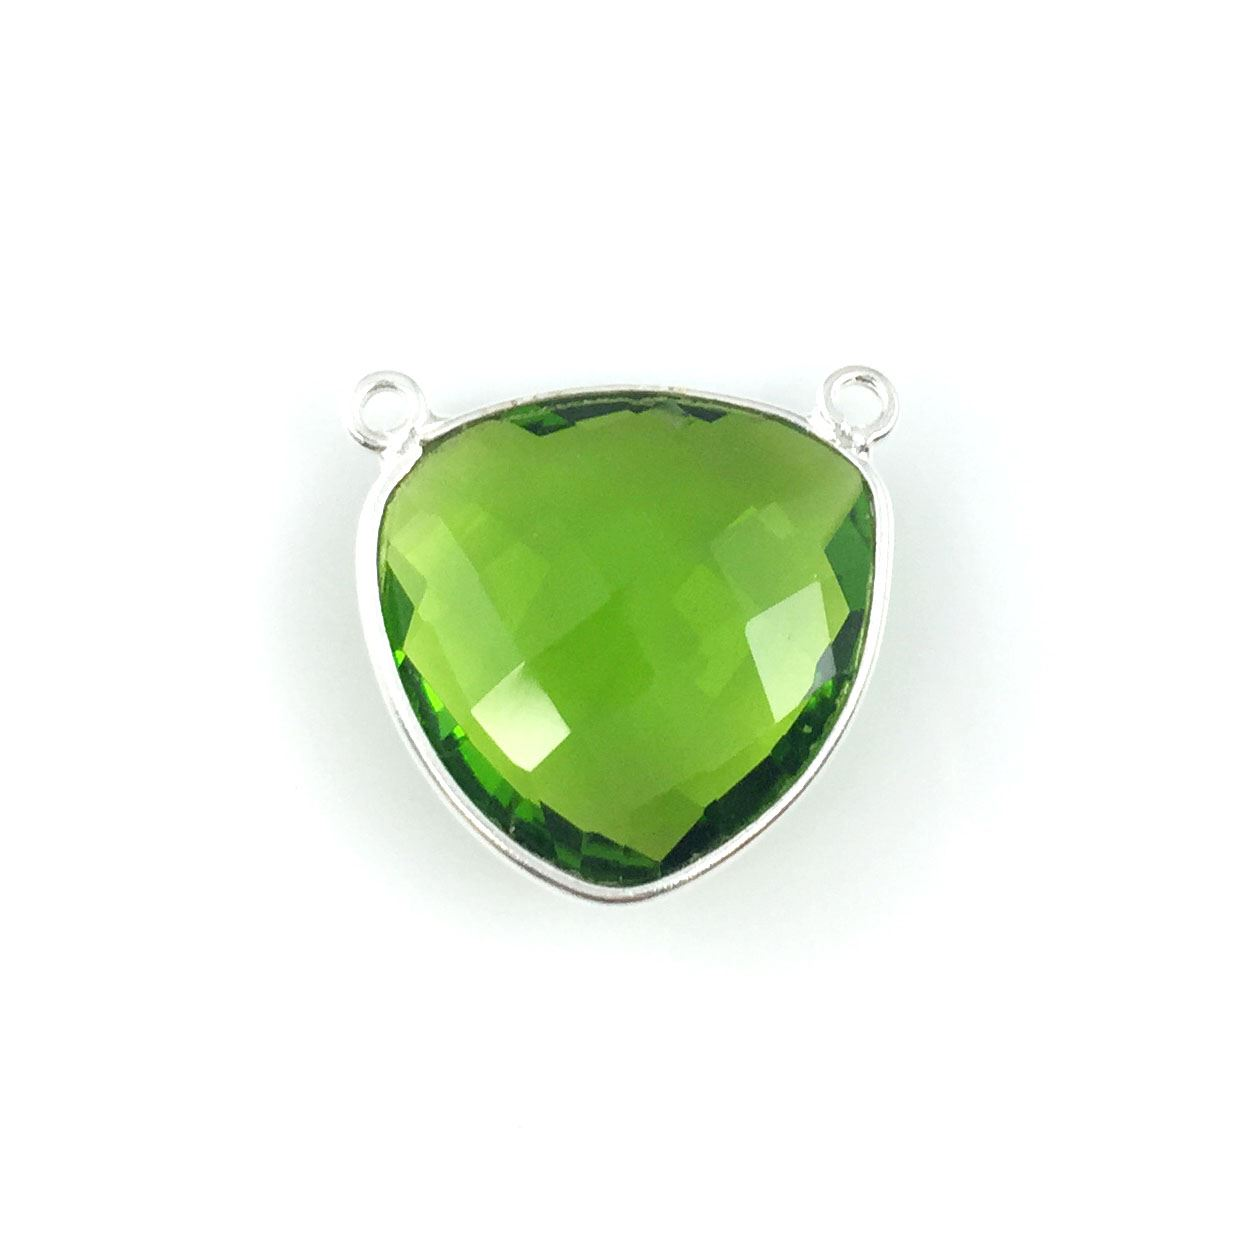 Bezel Gemstone Connector Pendant - Peridot Quartz - Sterling Silver - Large Trillion Shaped Faceted - 18 mm - 1 piece